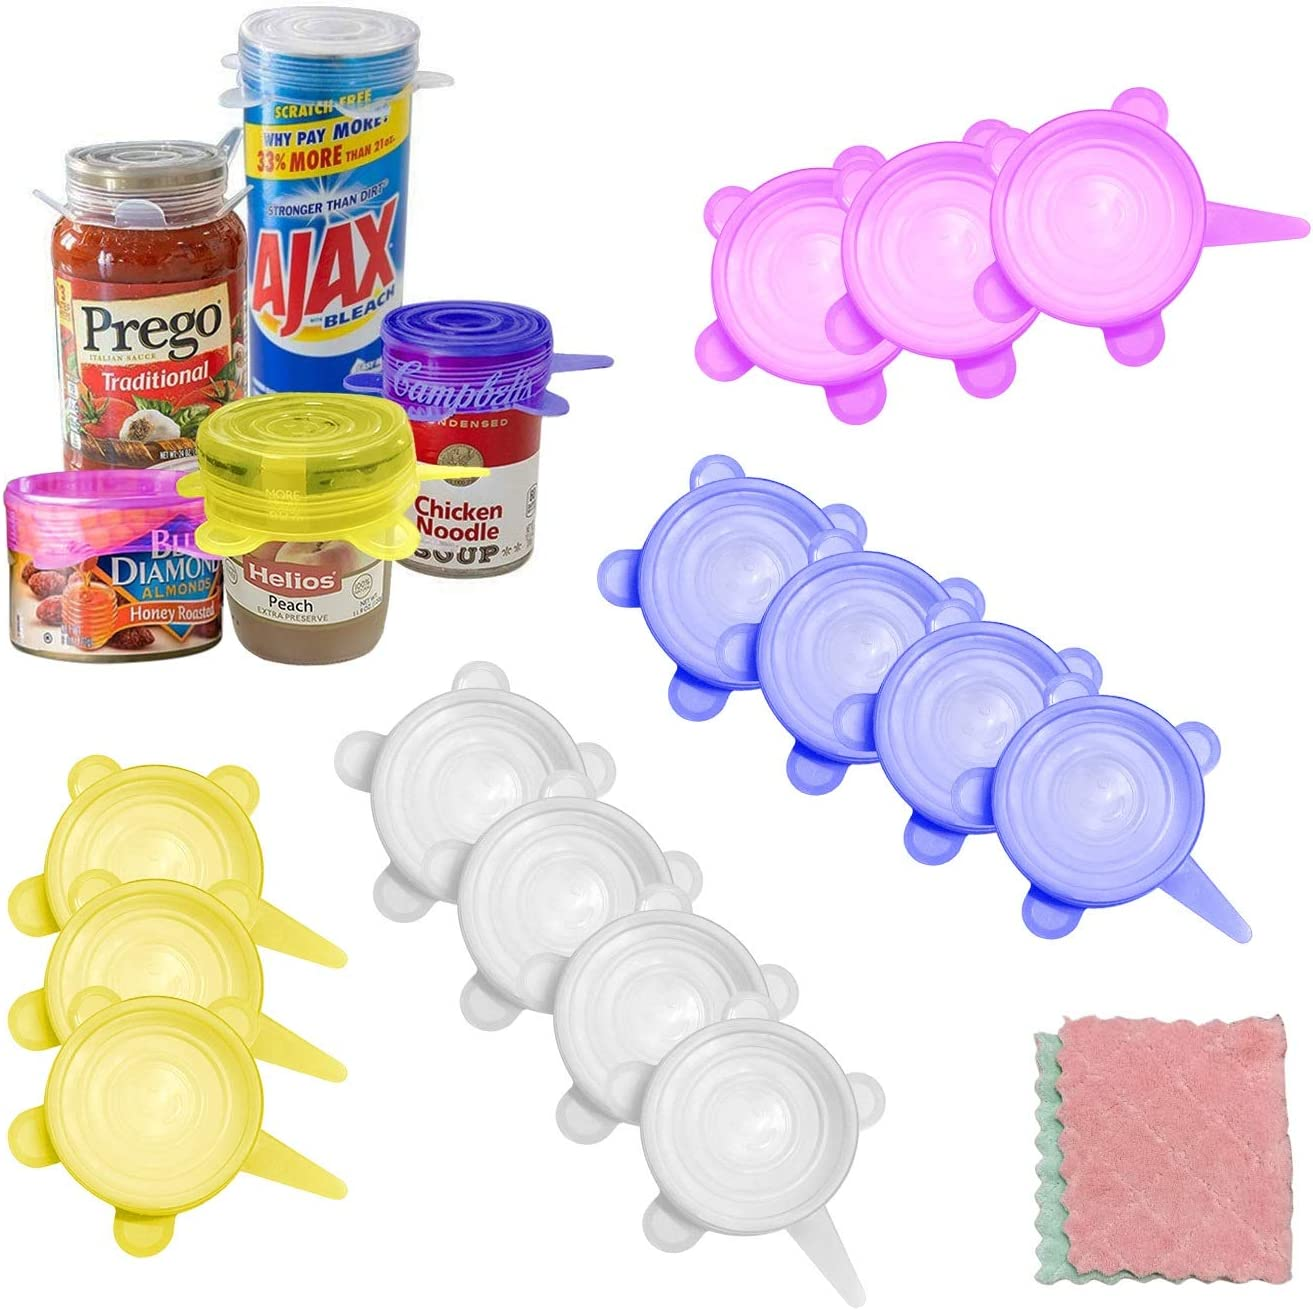 NINAEON Silicone Stretch Lids,15 Pack Small, Reusable Durable Food Storage Covers for Cups Small Bowls Cans Jars Fruits Vegetables, the Same Sizes of 2.5 Inch (Can Stretches to 3.8 Inches)